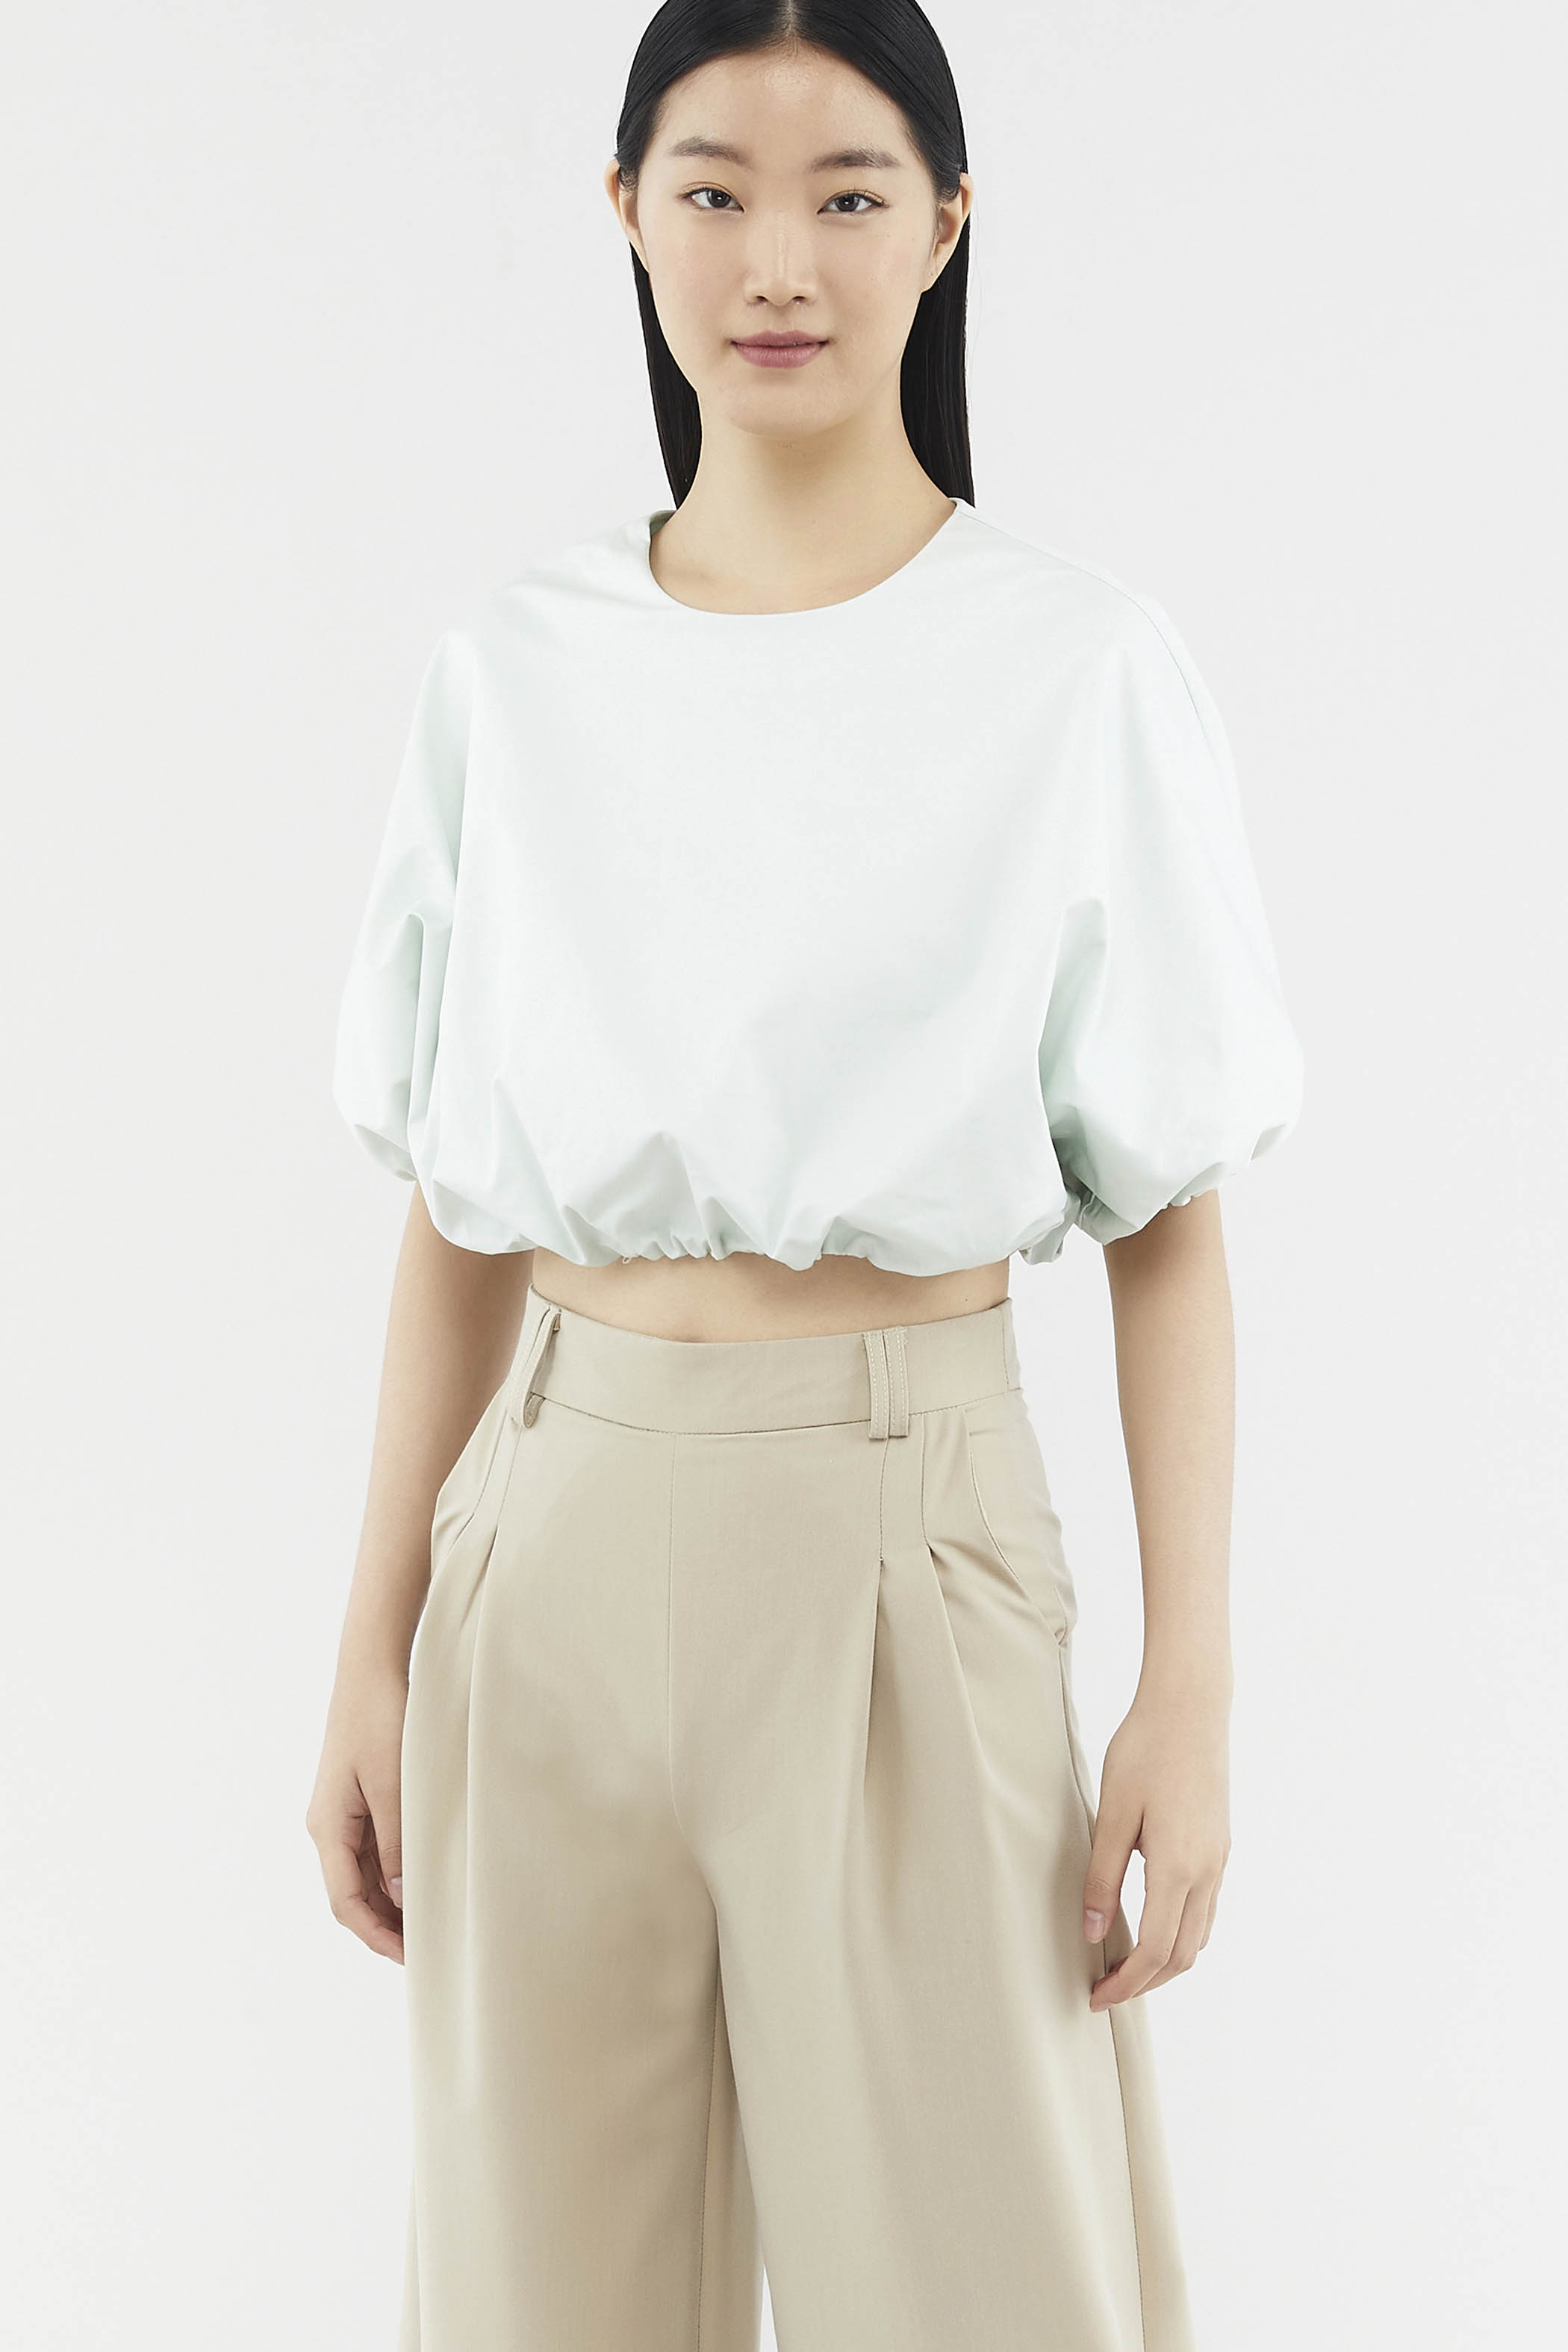 Gladys Balloon Crop Top